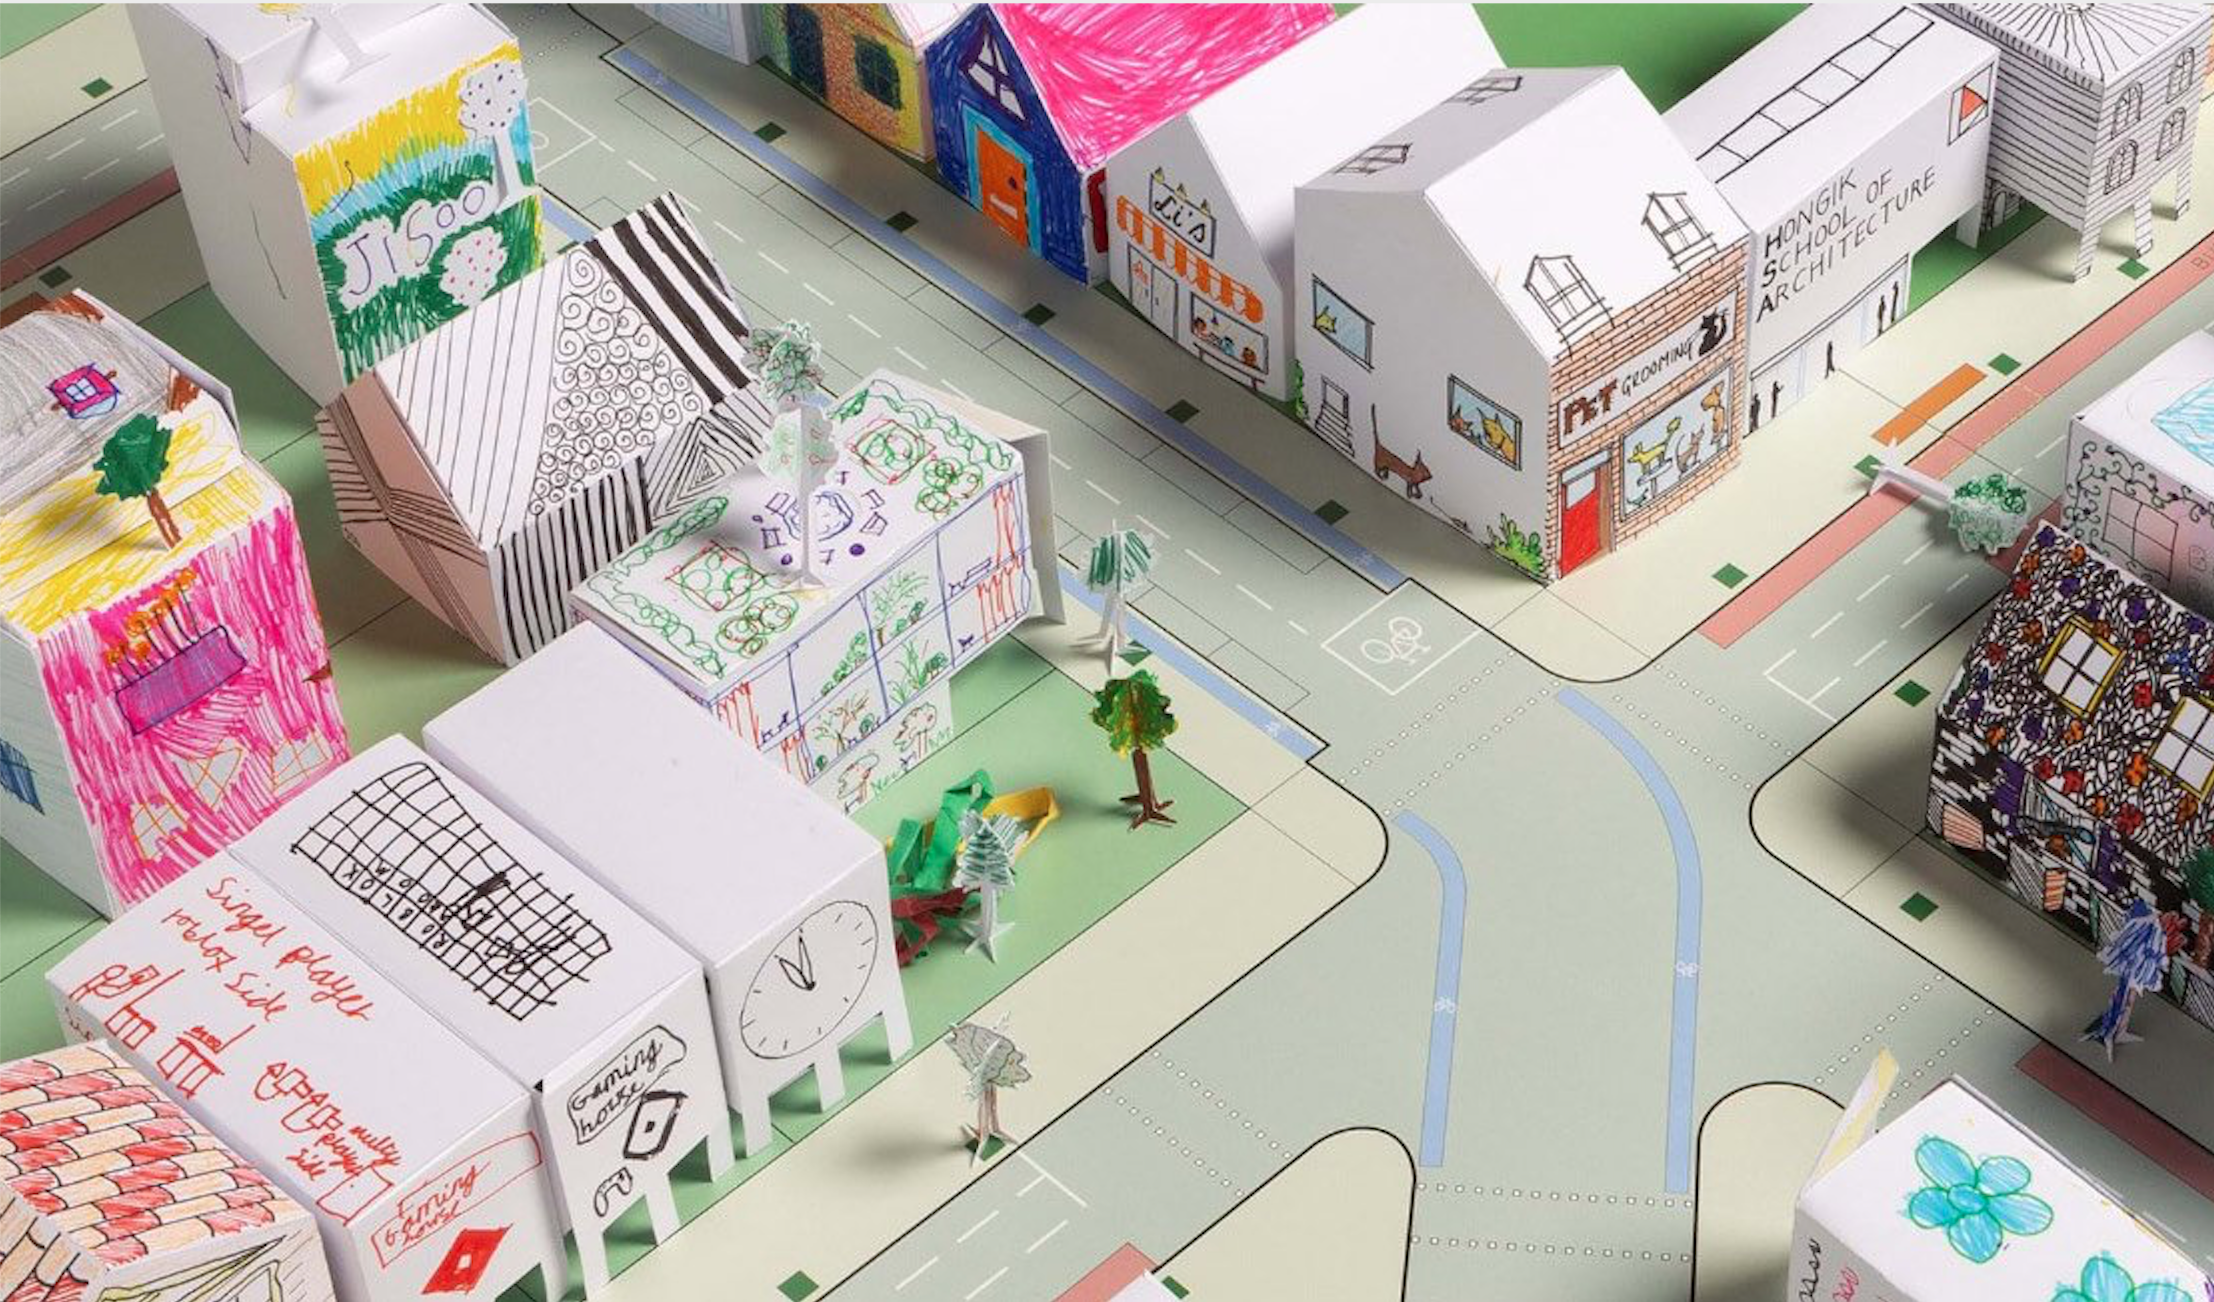 Architecture and Urban Design Activities for Children